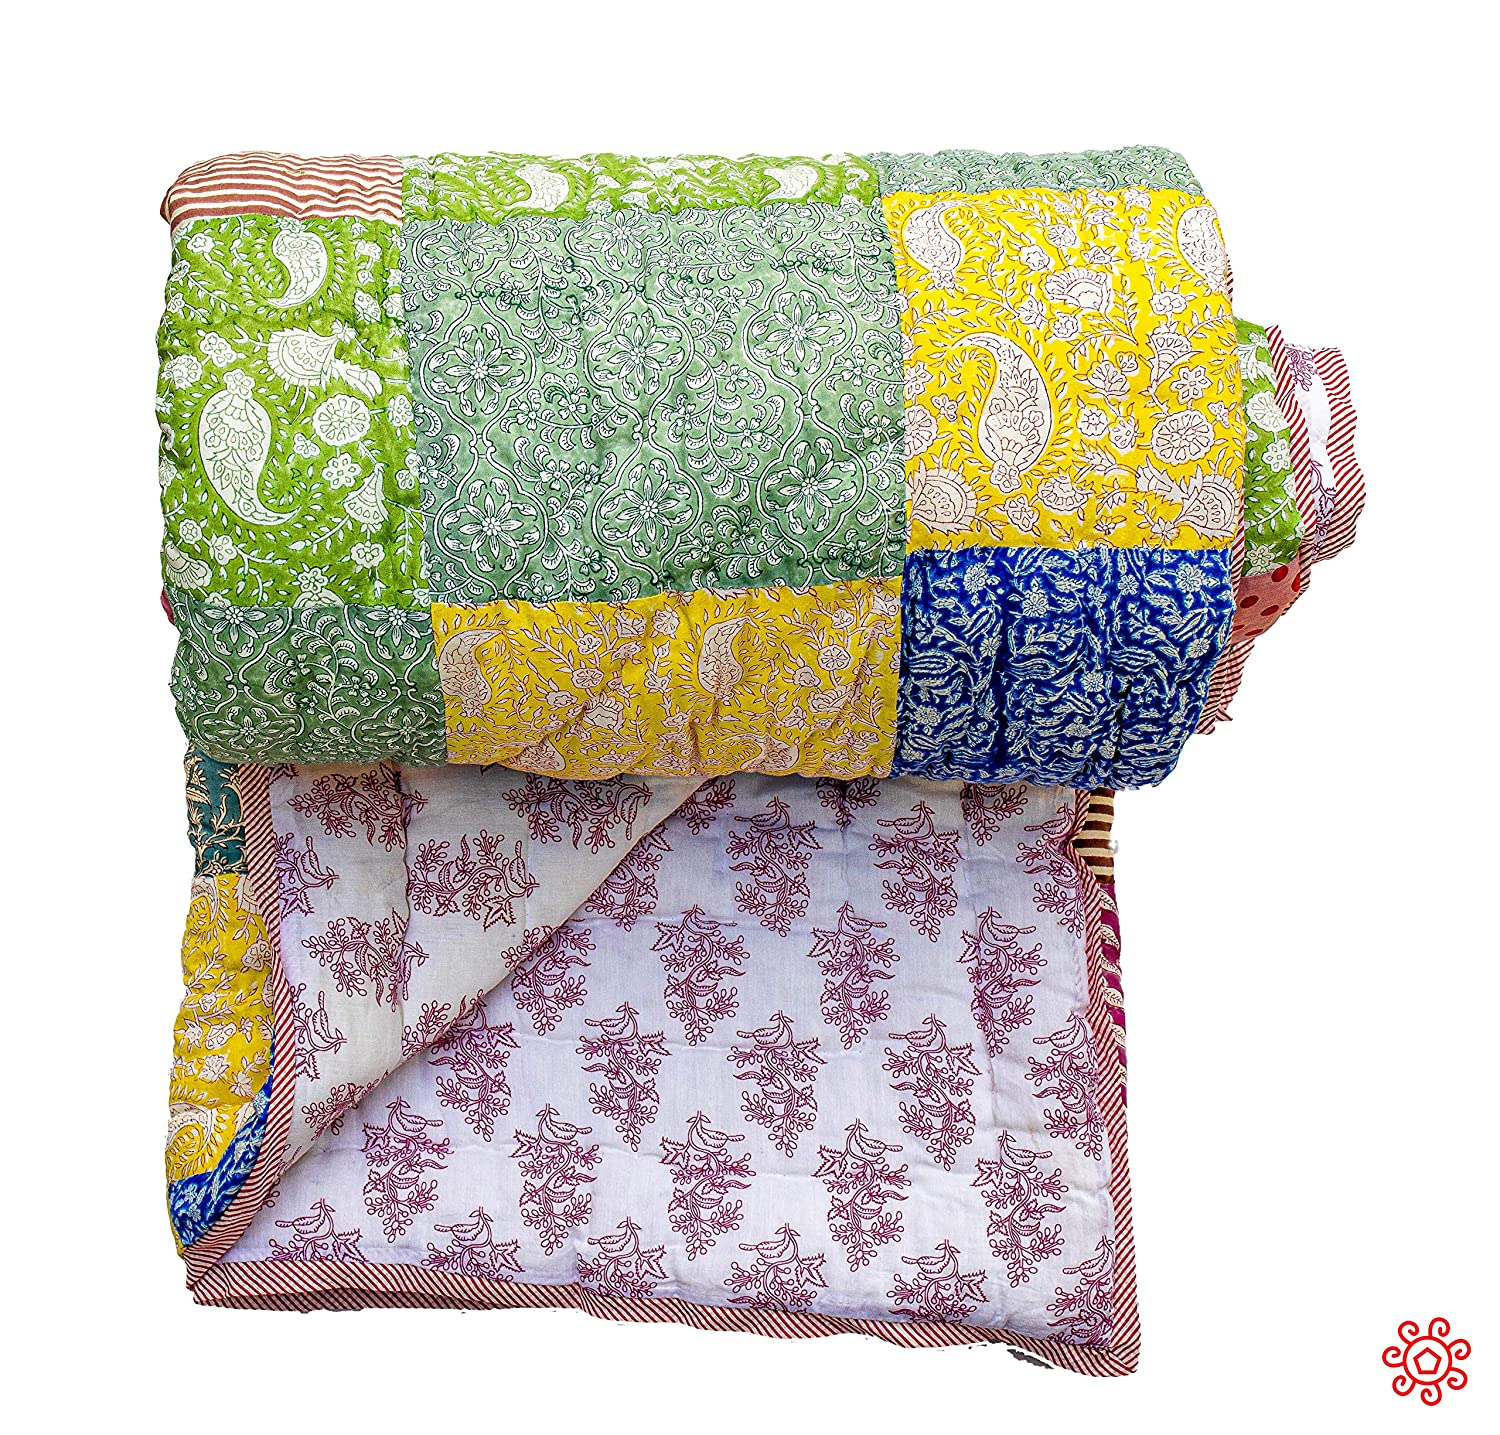 Image of All New Roysha 2020 Queen Quilt Collection - 100 Percent Handmade Patchwork Quilt - Qpw/202 Home and Kitchen